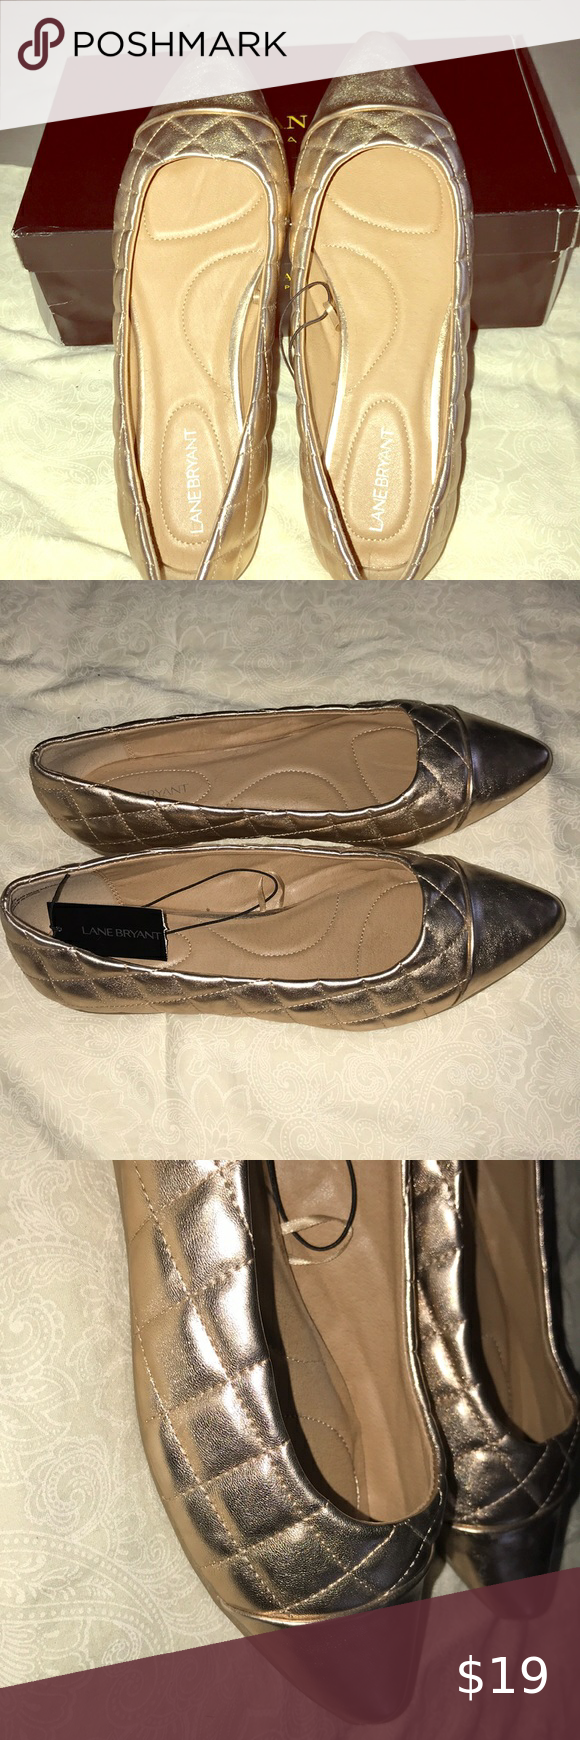 Size 12w Rose Gold Quilted flats. in